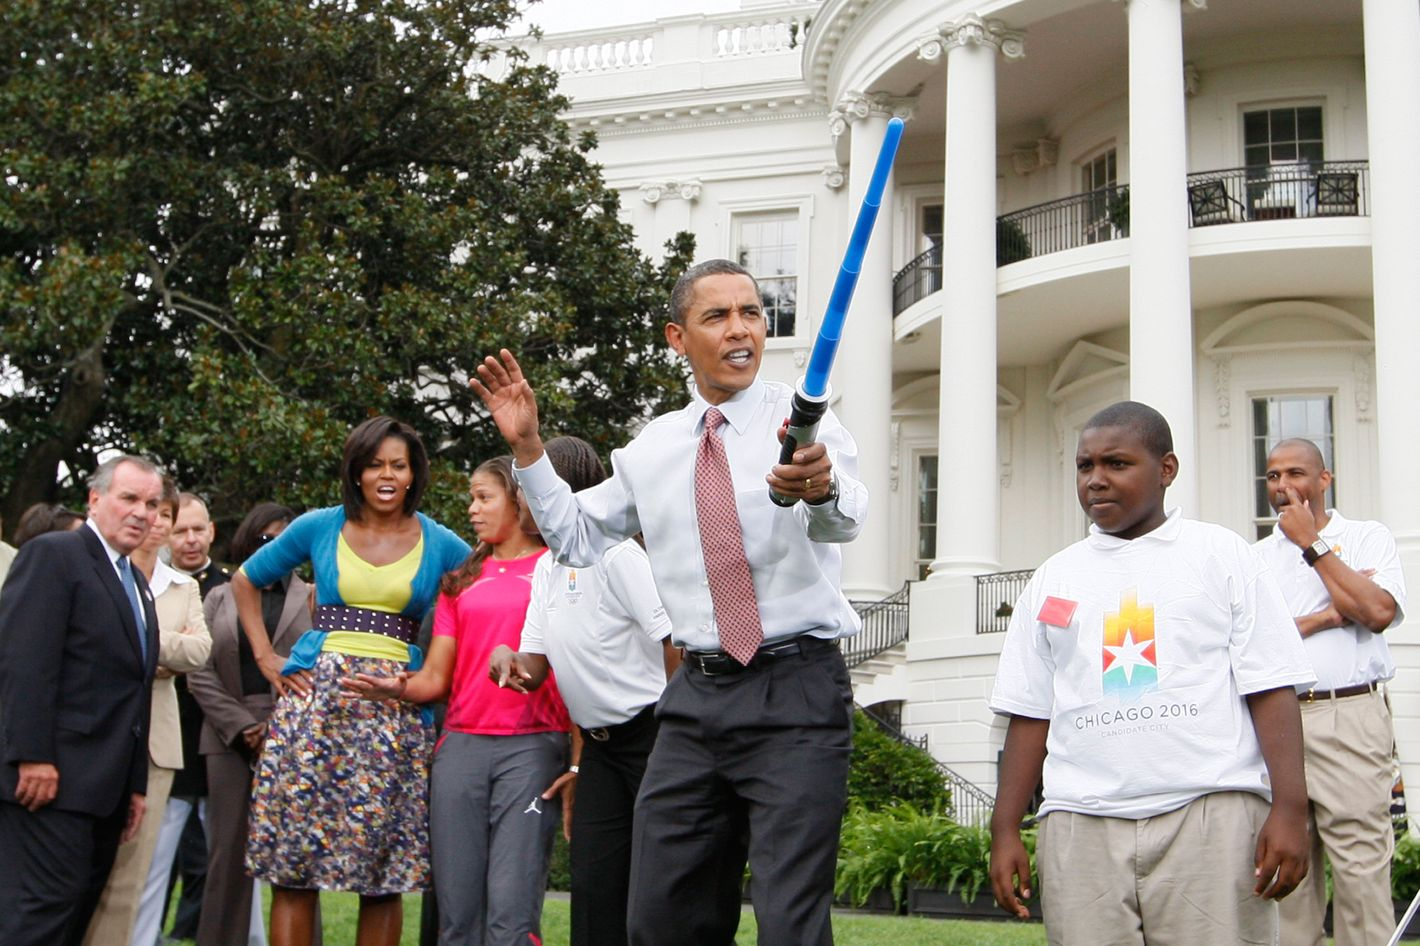 President Barack Obama uses a light saber as he watches a demonstration of fencing at an event supporting Chicago's 2016 host city Olympic bid, Wednesday, Sept. 16, 2009,  on the South Lawn of the White House in Washington. At rear is Chicago Mayor Richard Daley and first lady Michelle Obama.